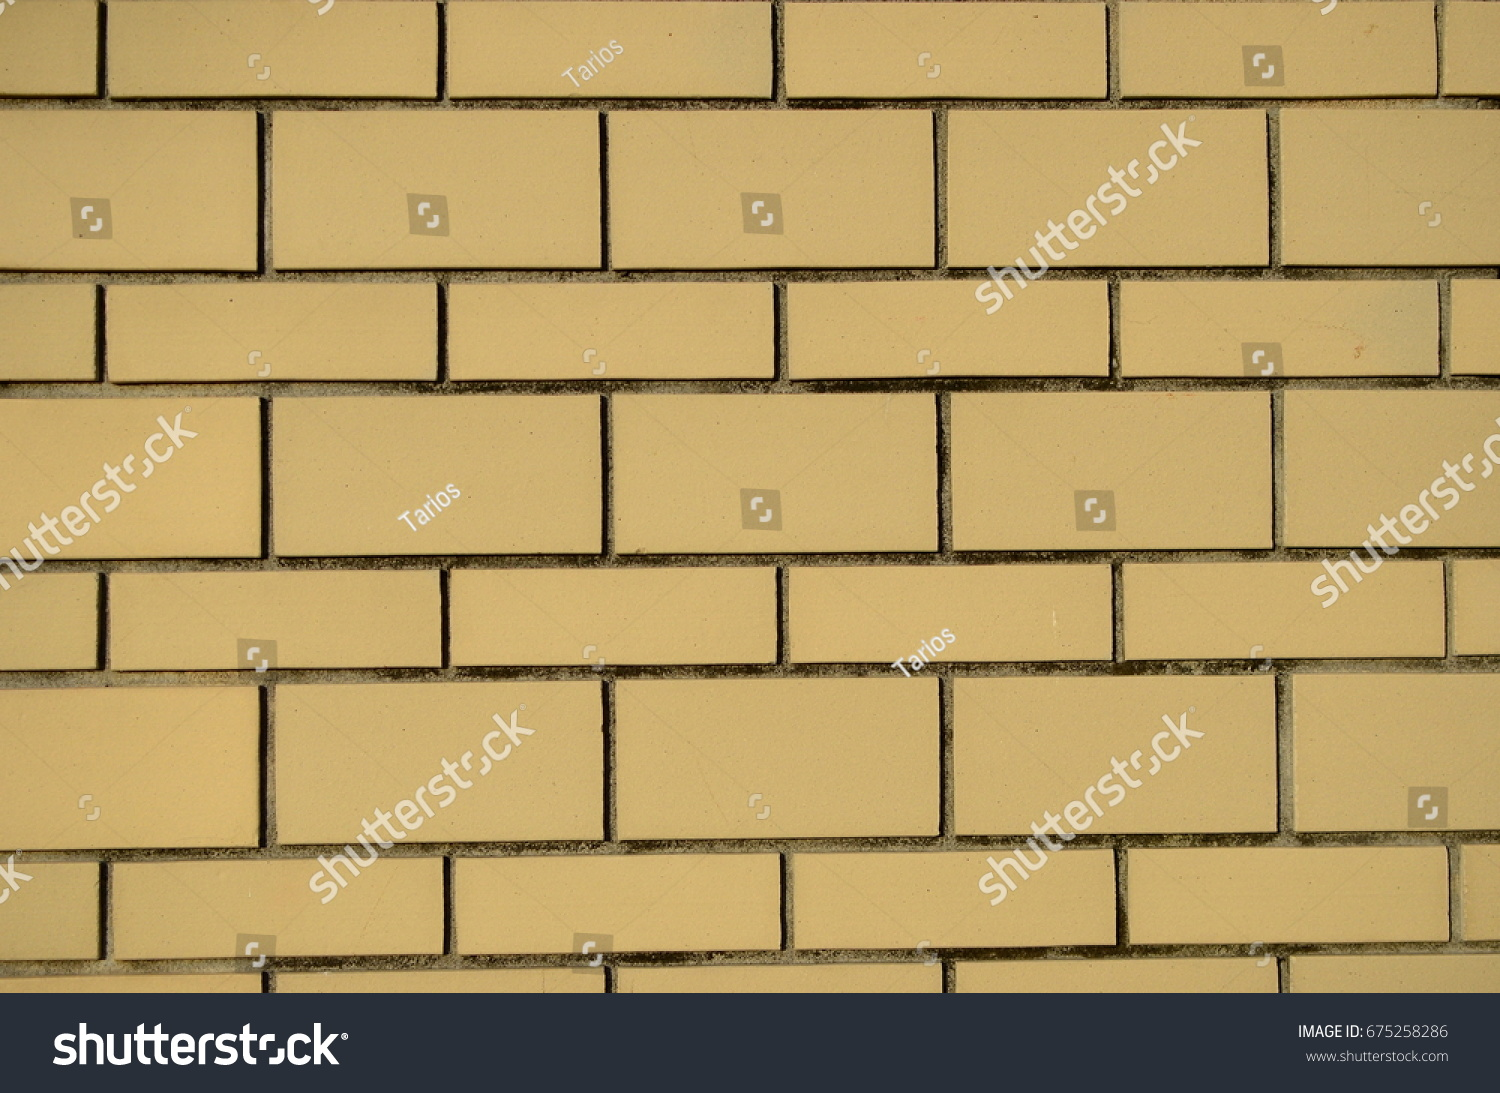 High Resolution Texture Cream Brick Wall Stock Photo & Image ...